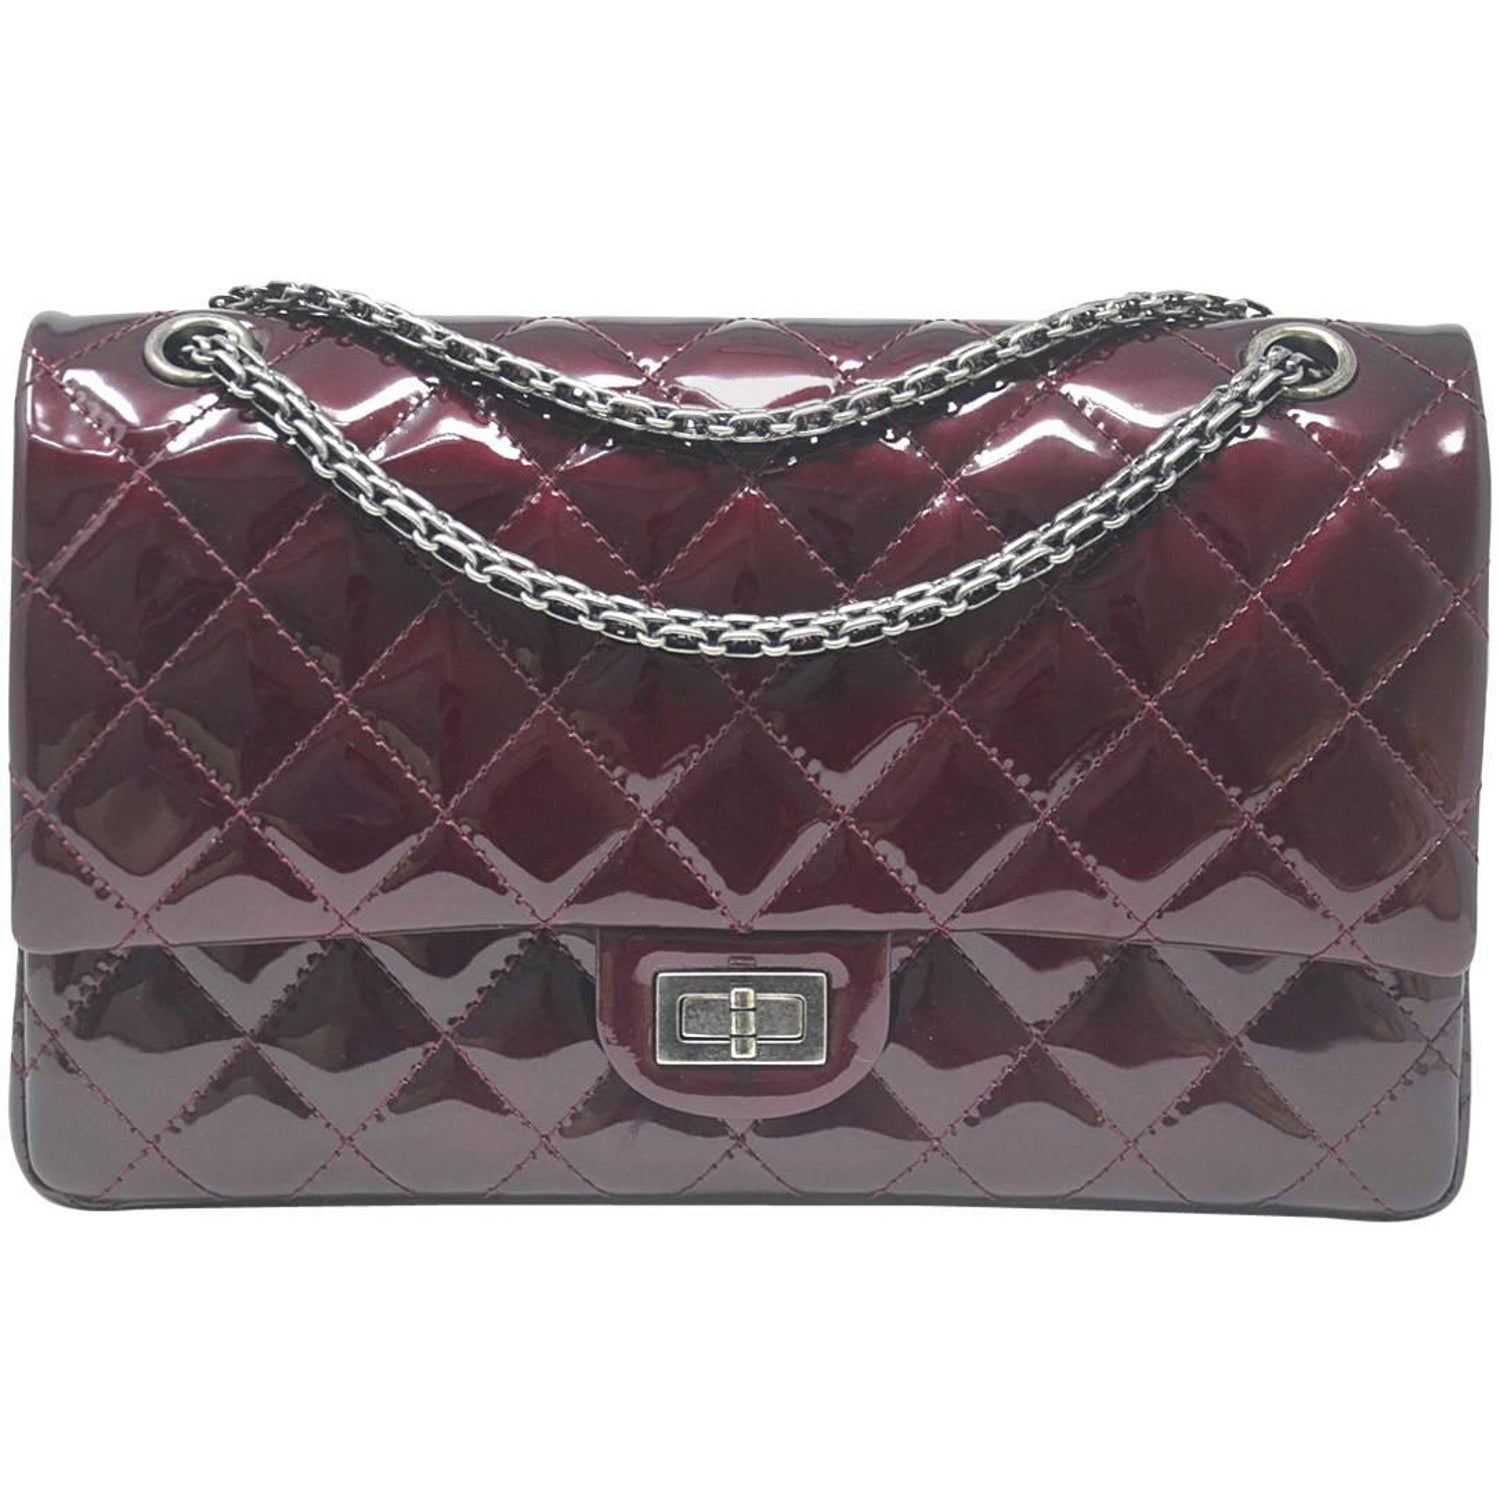 fd834231e9cff8 Chanel Burgundy Reissue Patent Leather 2.55 Classic Handbag at 1stdibs